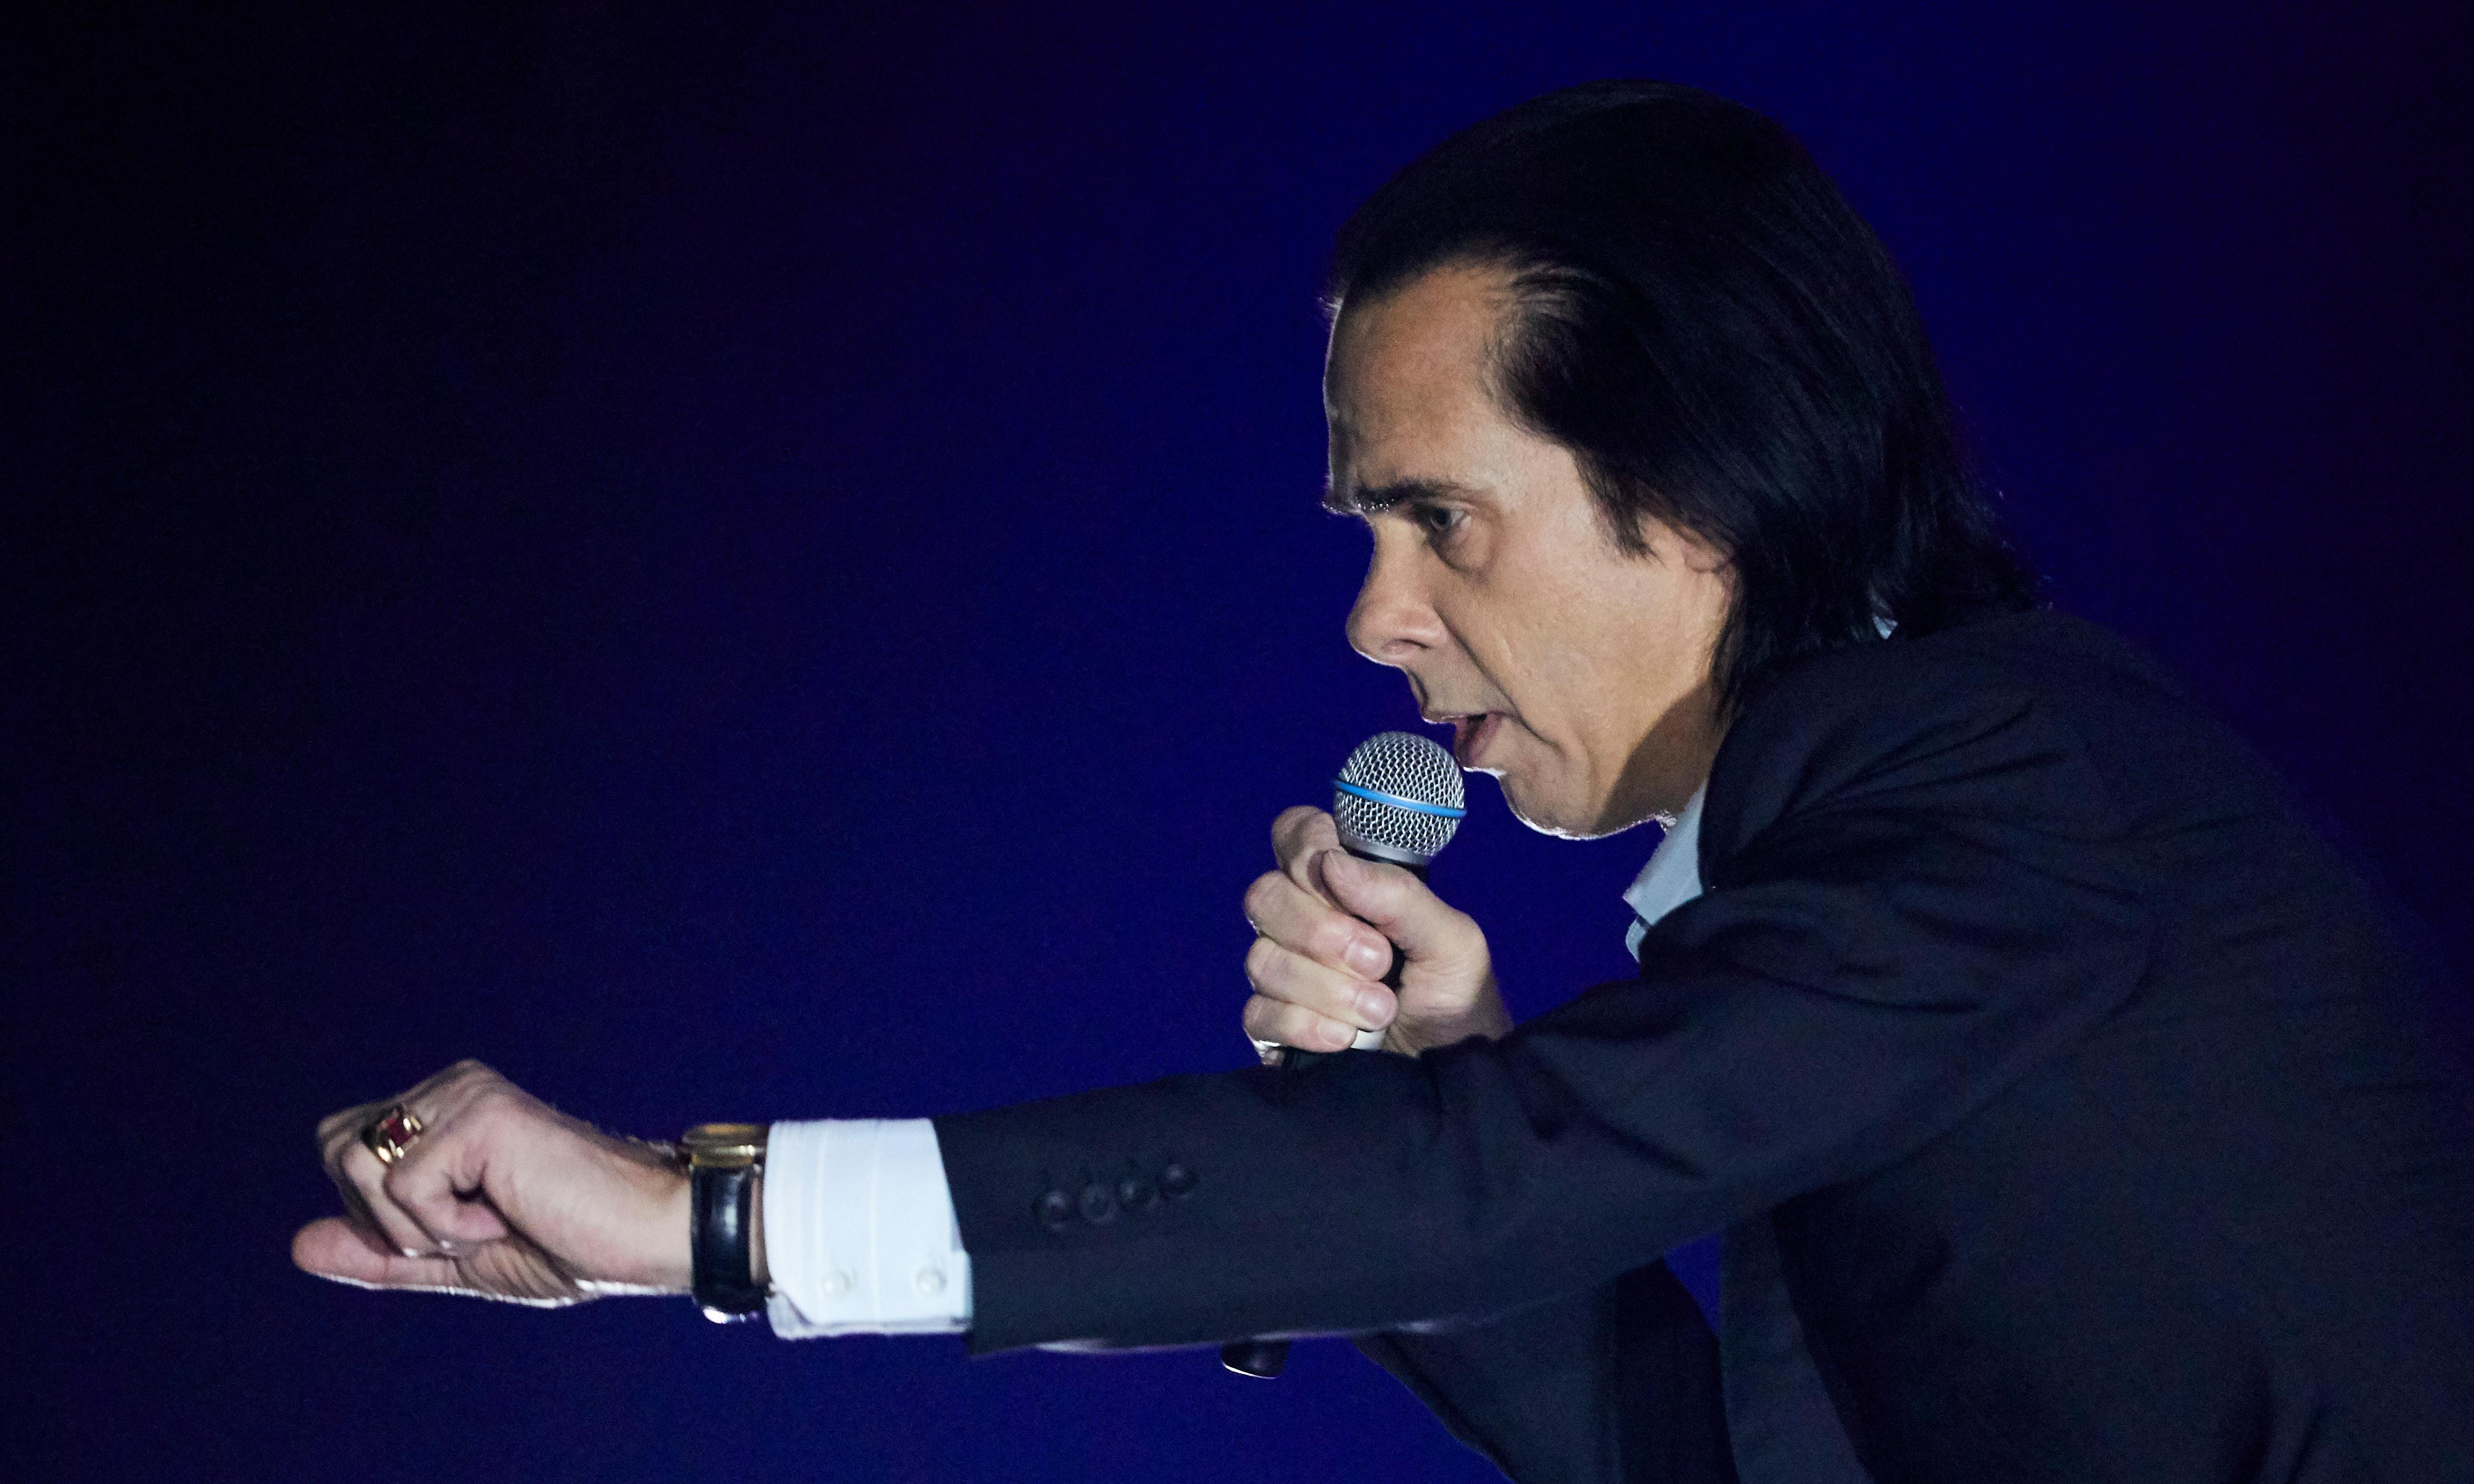 'An exercise in connectivity': Nick Cave to tour conversation event across UK